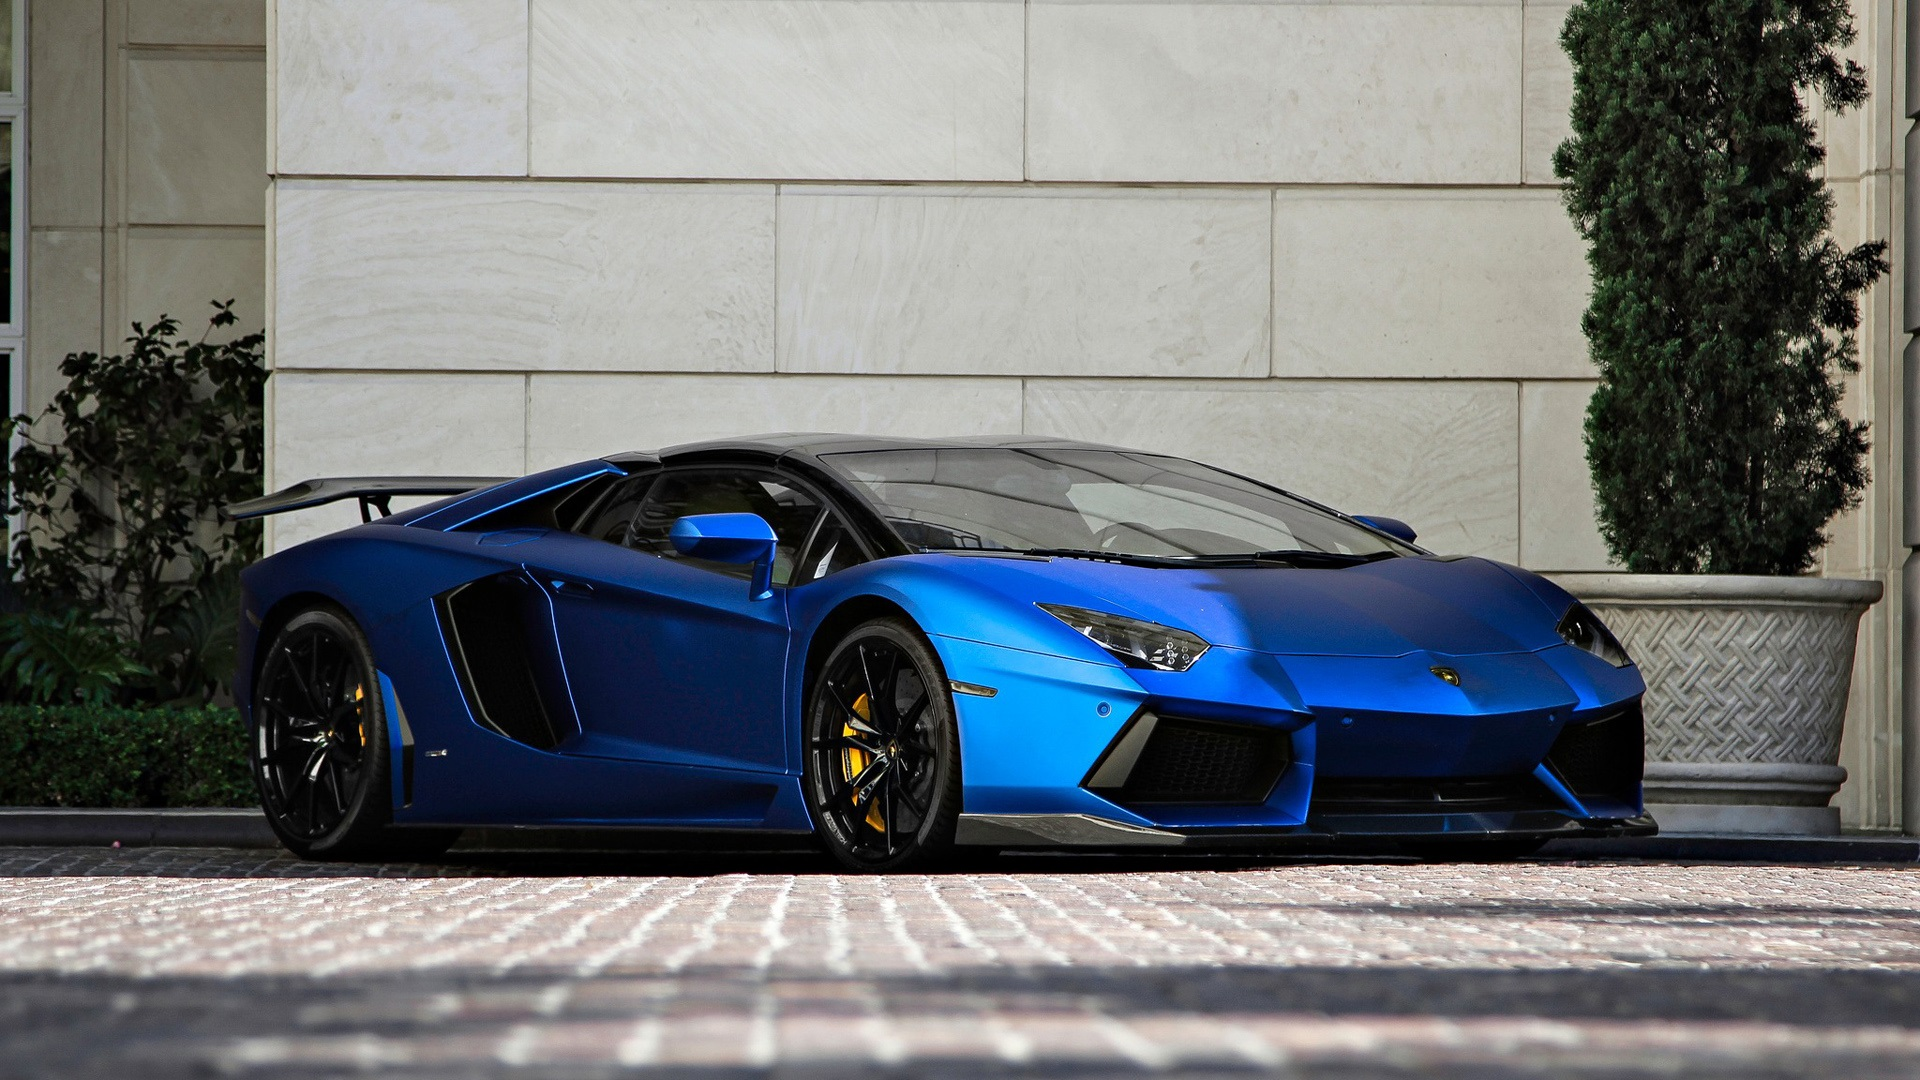 Wallpaper Lamborghini Aventador Lp700 4 Blue Supercar Front View